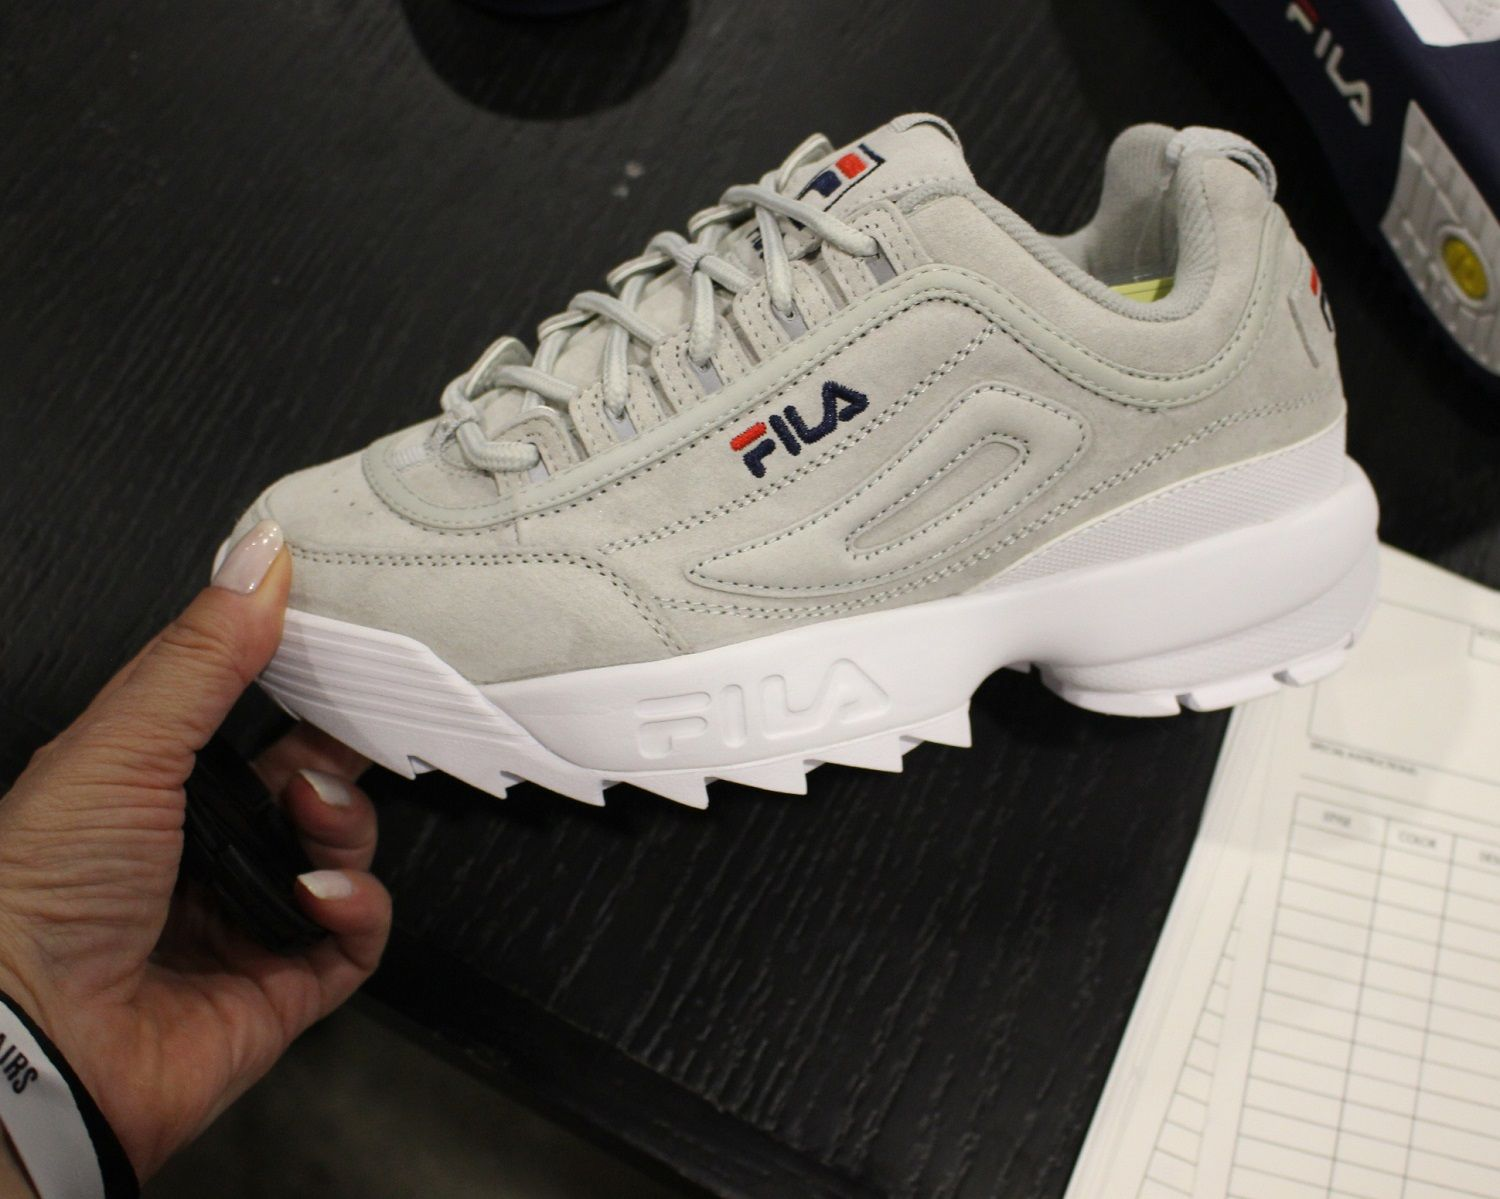 92c78c3ac A preview of Fila's Disruptor II pastel and metallic colorways for women  slated to launch in the coming months.